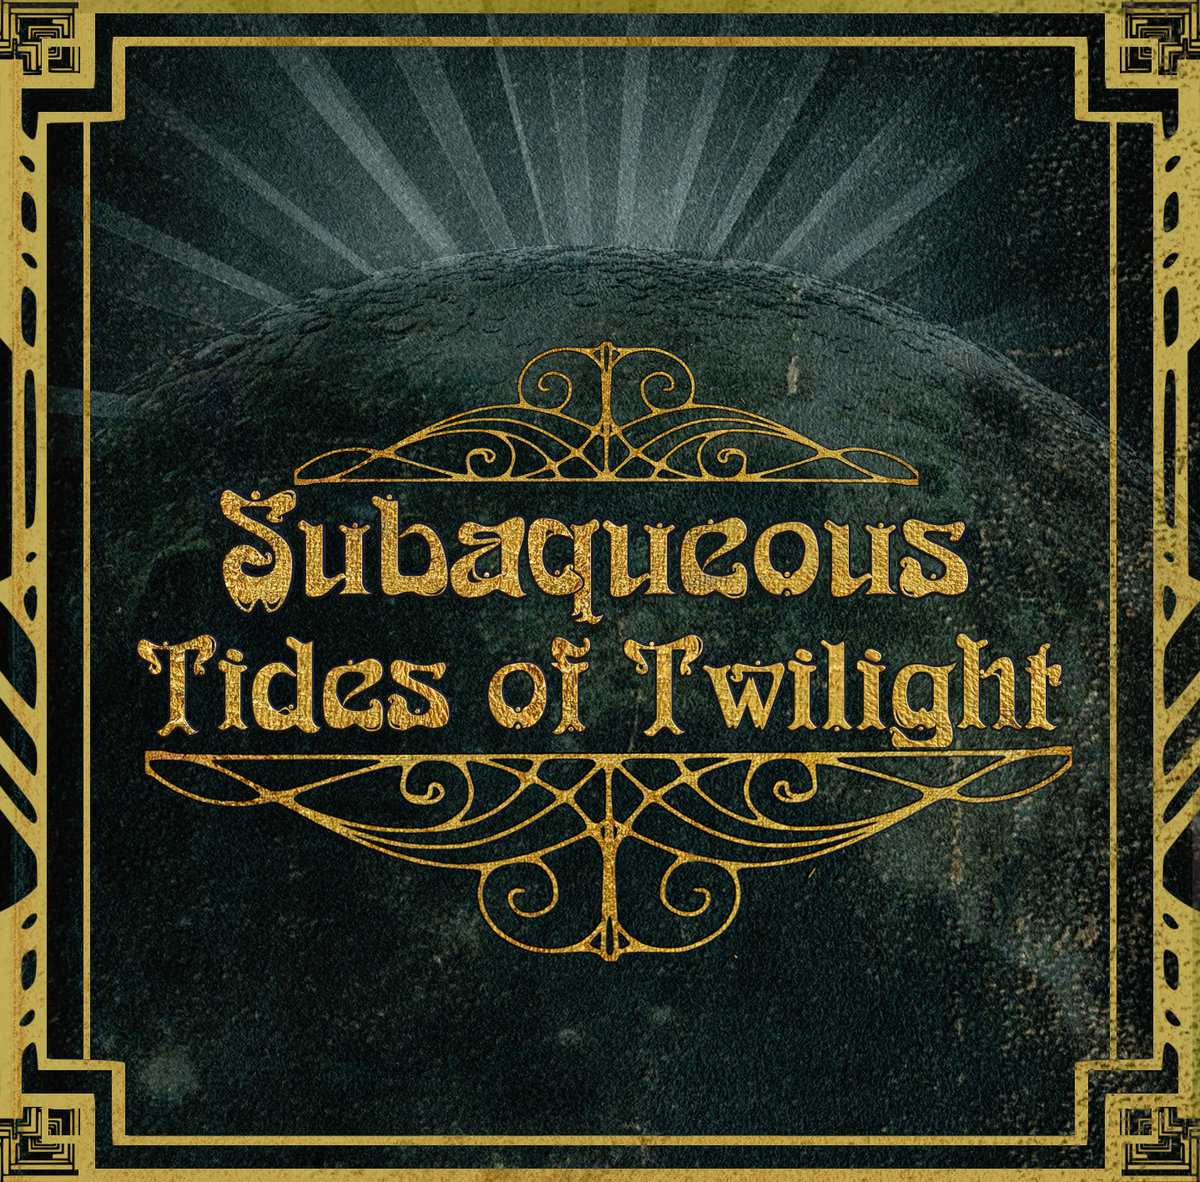 Subaqueous - Voyage @ 'Tides of Twilight' album (electronic, ambient)